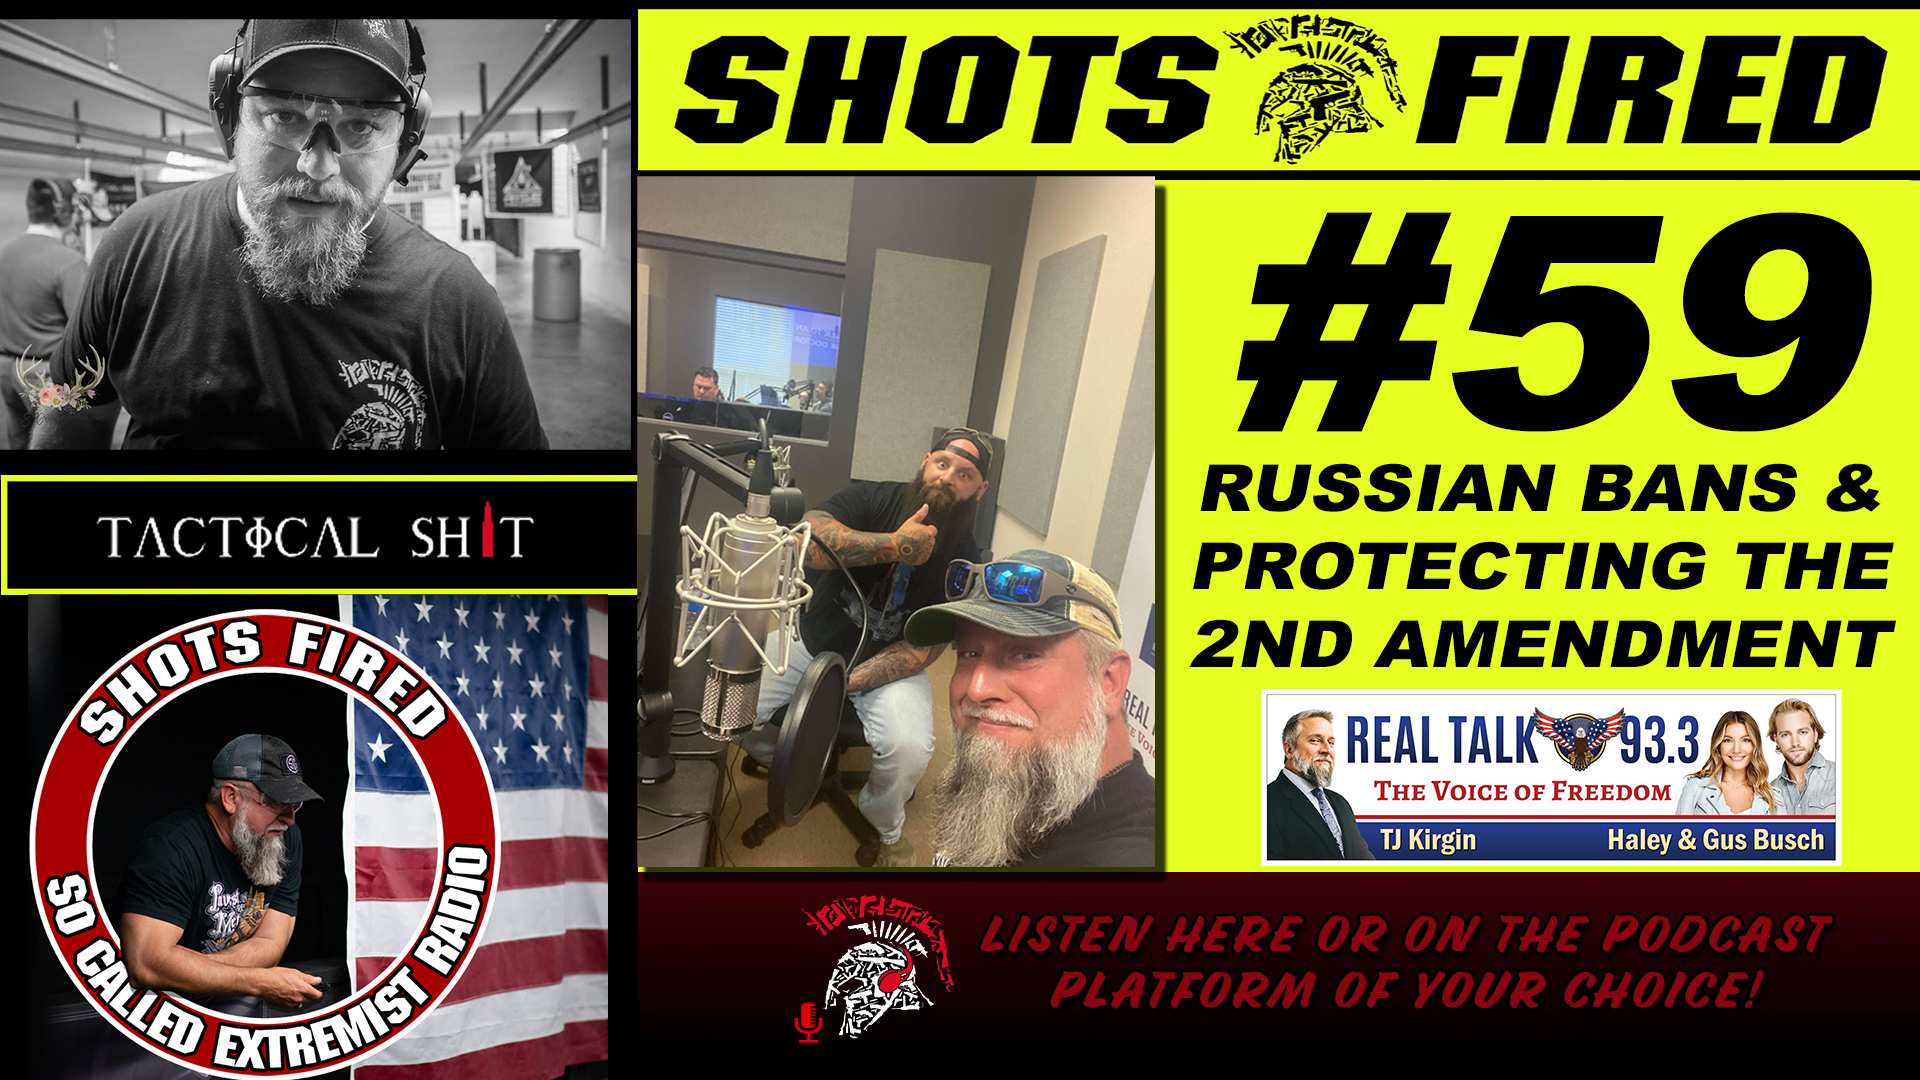 Shots Fired EP 59: Russian Bans & Protecting The 2nd Amendment